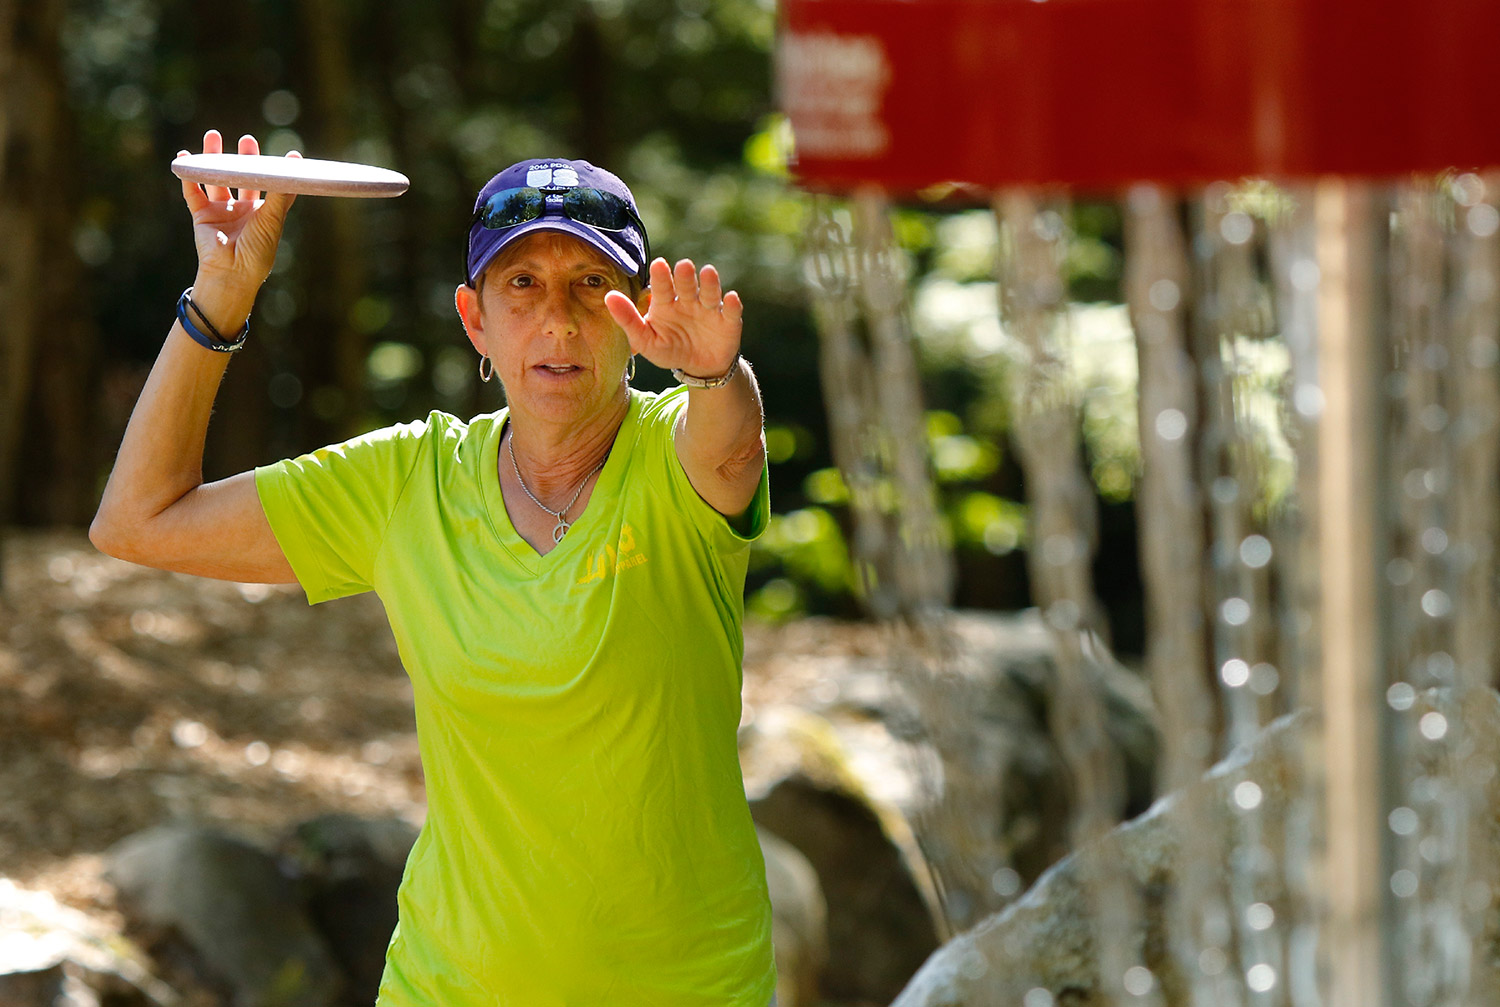 Patti Joseph lines up a throw near a basket while practicing Wednesday at the Sabattus Disc Golf course. Joseph, from Florida, is one of nearly 100 women from 30 states and three countries competing in the U.S. Women's Disc Golf Championship this Friday through Sunday at Sabattus Disc Golf. Gregory Rec/Staff Photographer